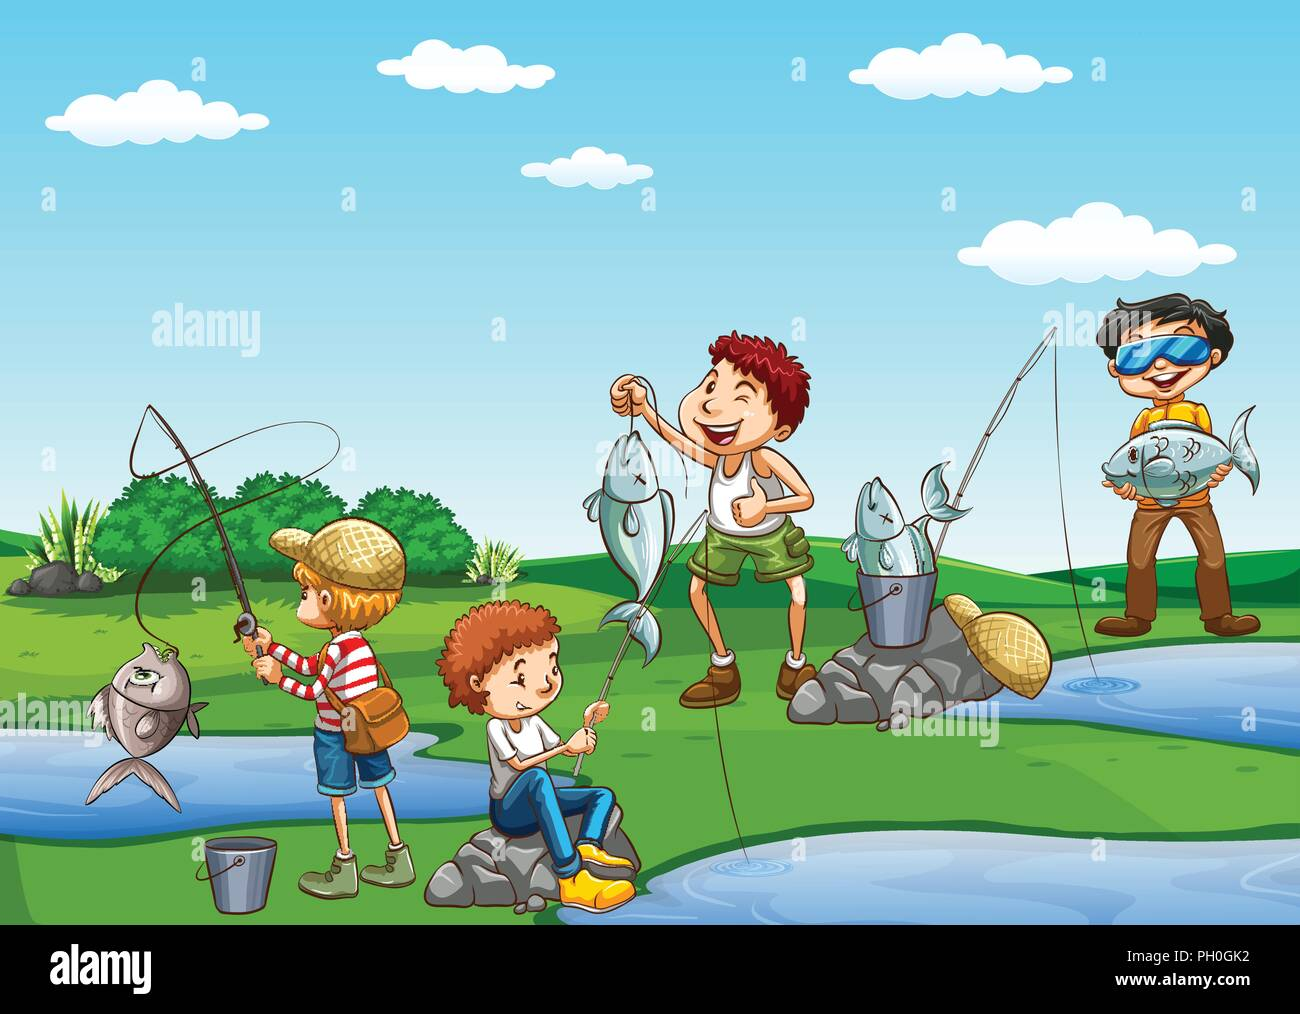 Group of boys fishing illustration - Stock Image